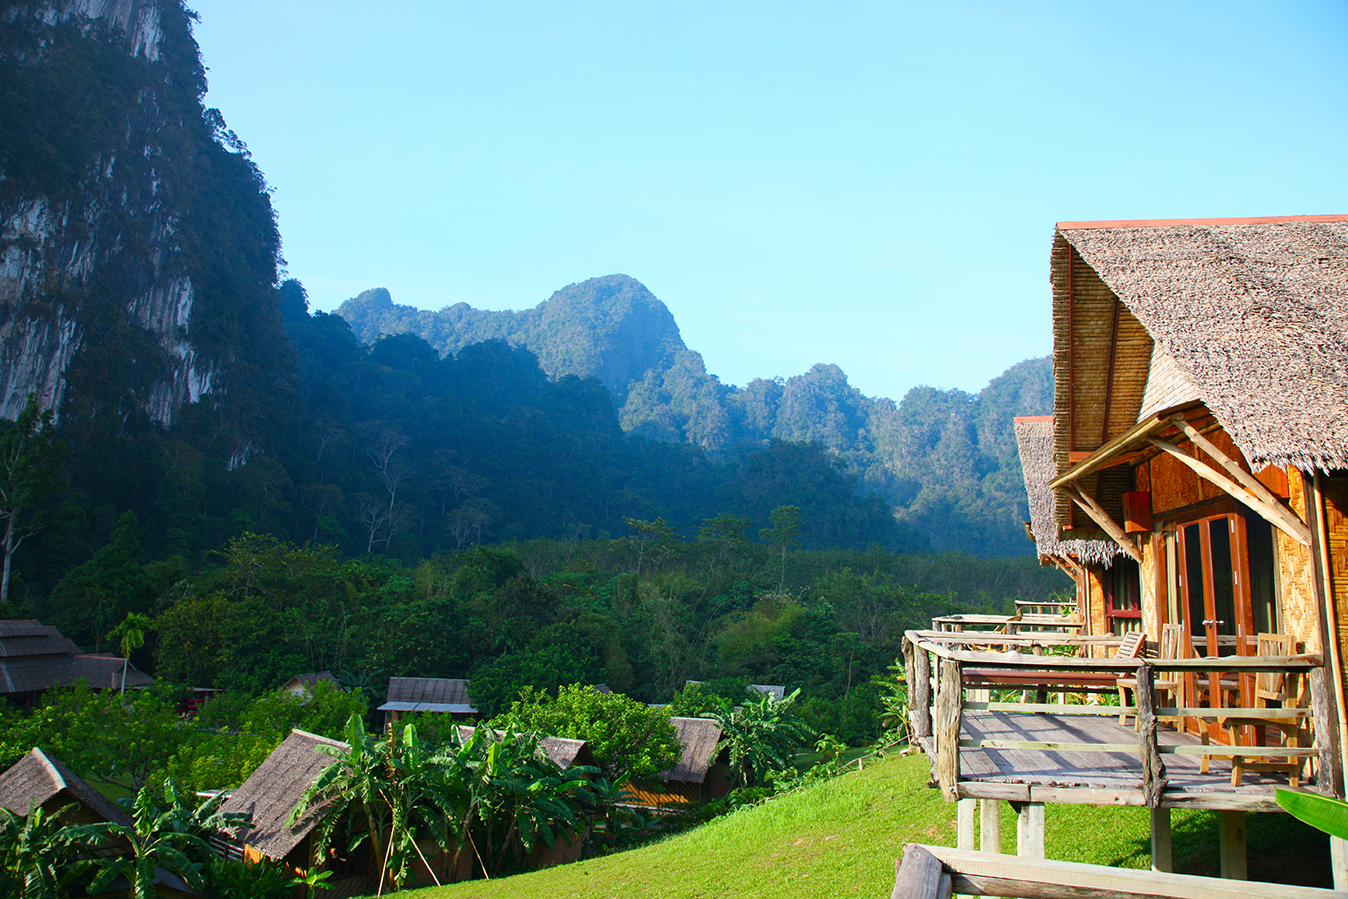 huts in beautiful green lush mountain ranges